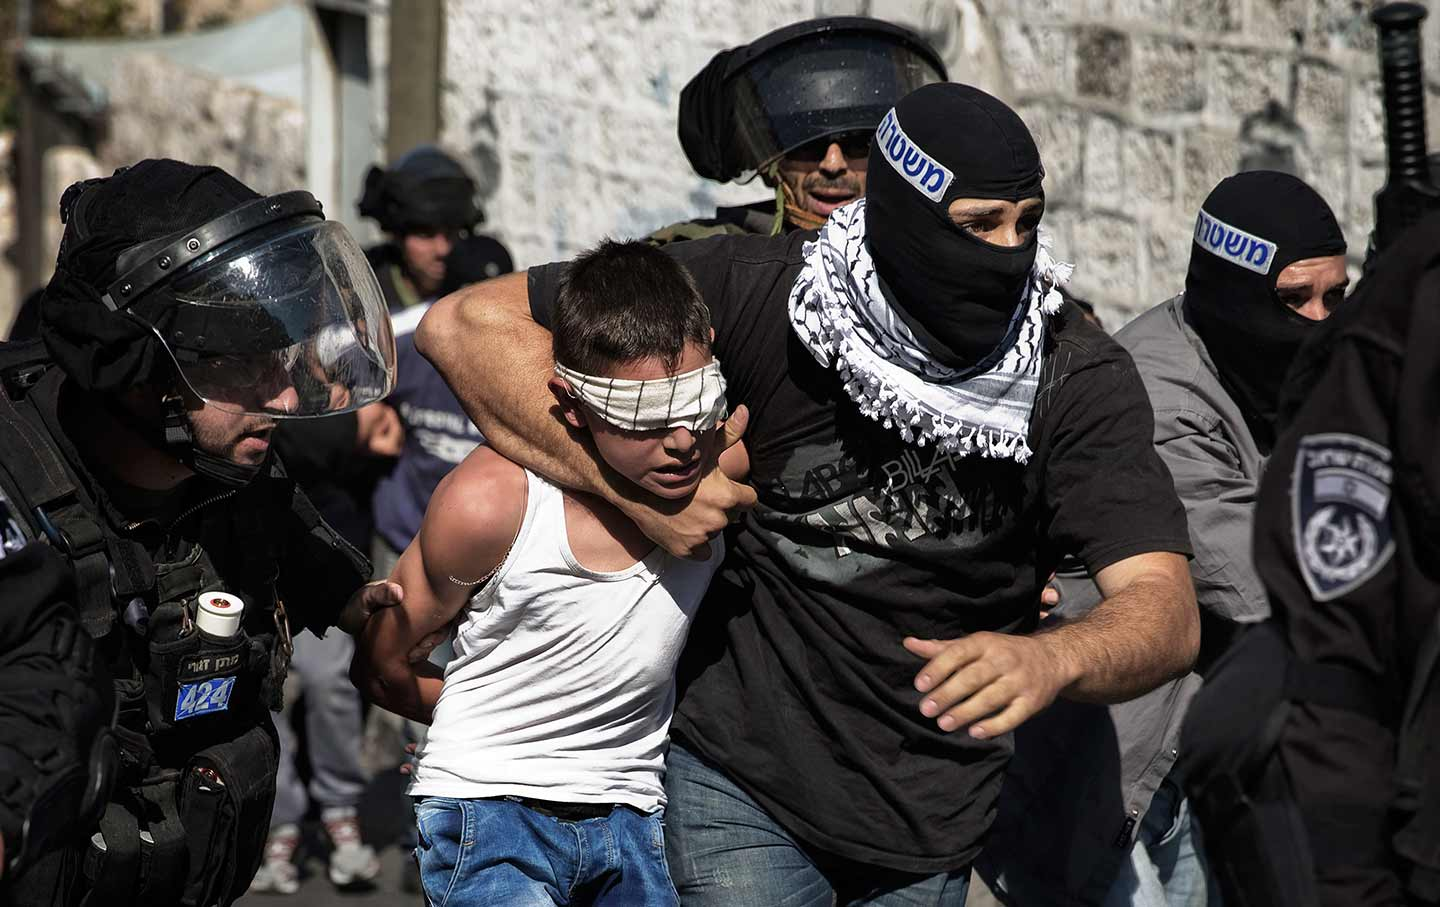 A Palestinian child is taken by Israeli police in Jerusalem